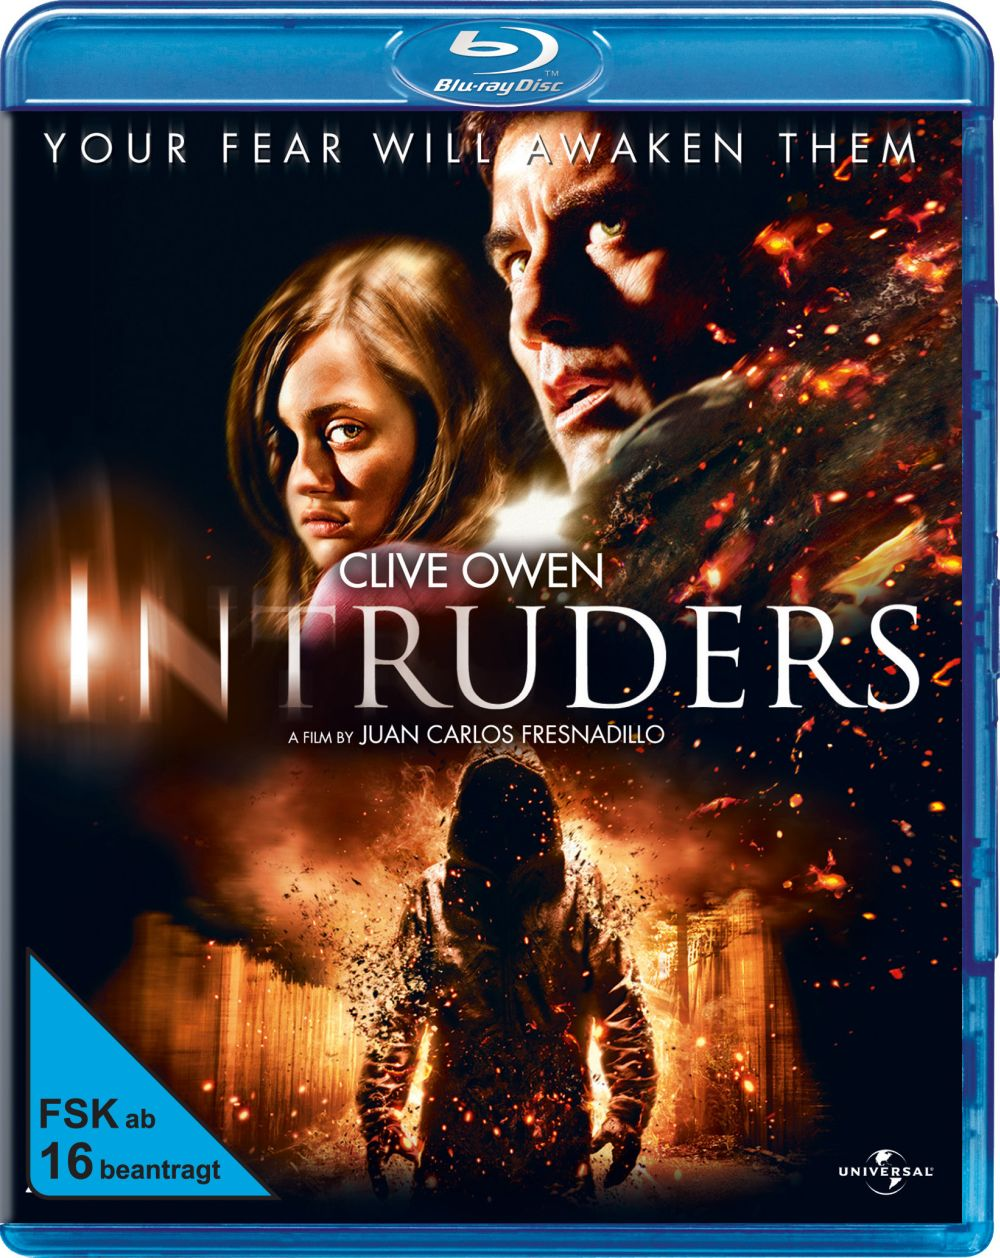 Intruders (2011) Full HD 1080p Ita-Eng